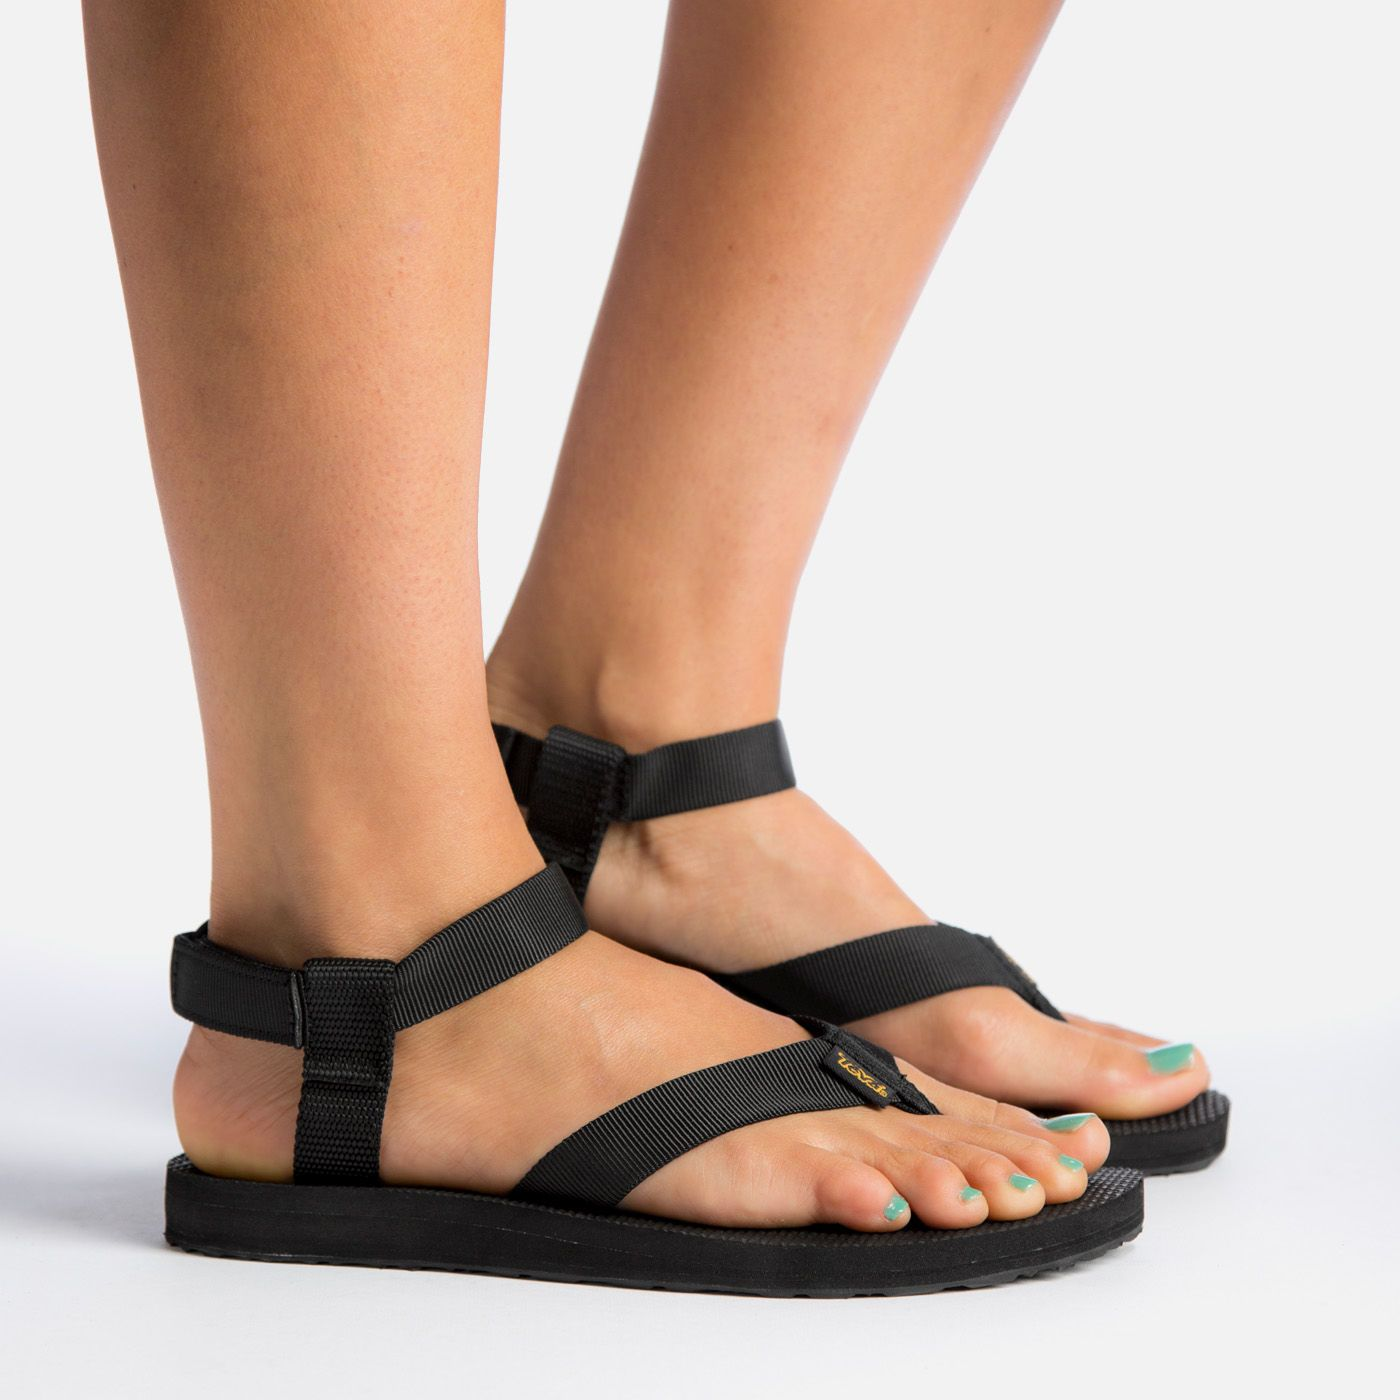 Free Shipping & Free Returns on Authentic Teva® Women's sandals. Shop our  entire Collection